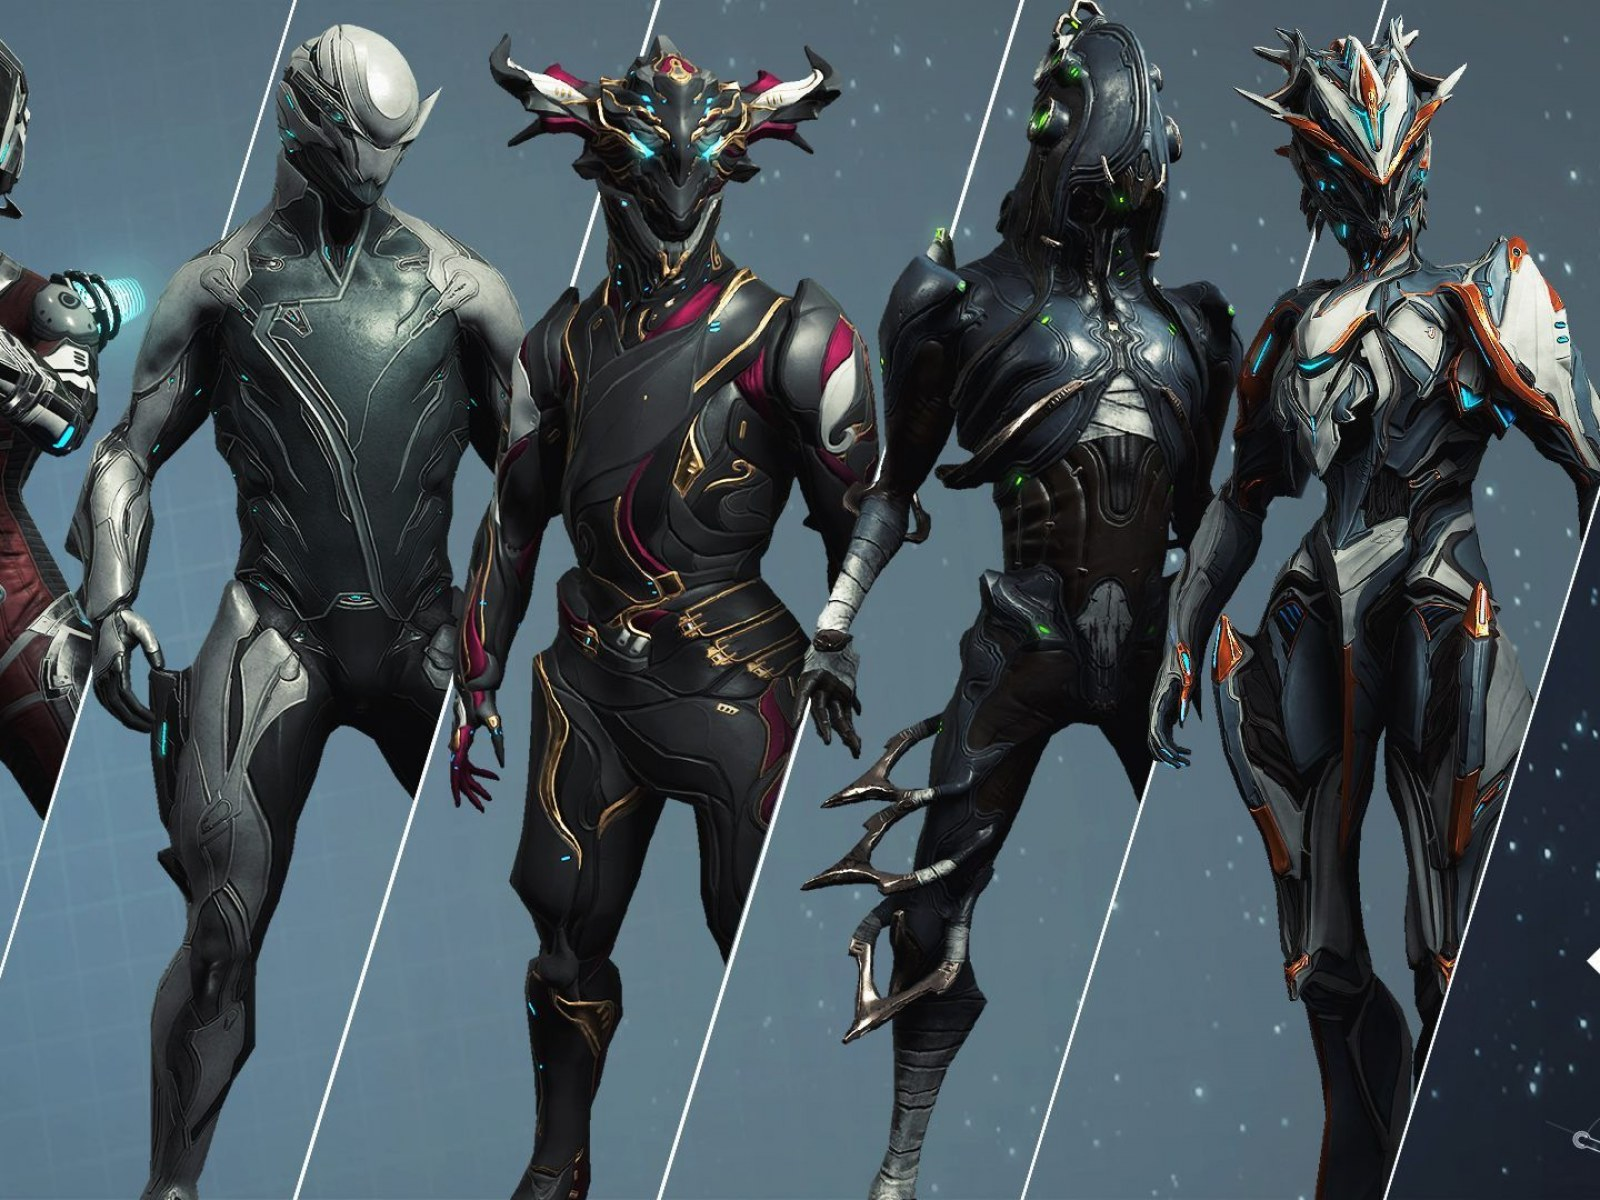 Warframe The Sacrifice Update 23 1 0 Patch Notes Tennogen Round 13 Looks Amazing Nova prime is the primed variant of the nova warframe featuring more powerful stats: sacrifice update 23 1 0 patch notes